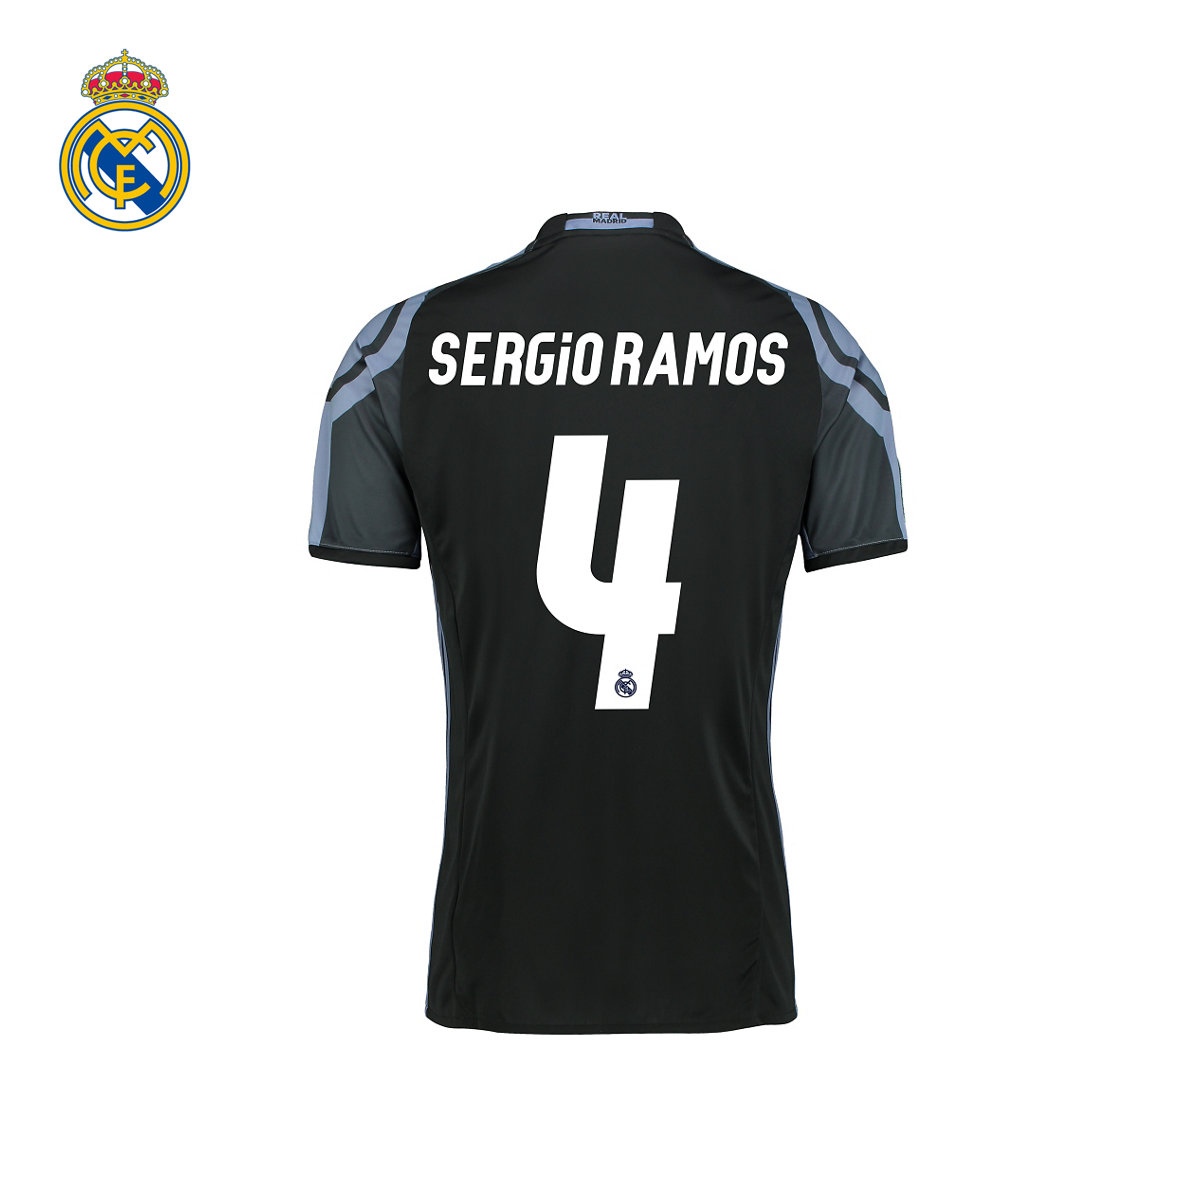 size 40 b001a e737c Buy [Woman] real madrid real madrid ramos ramos jersey short ...